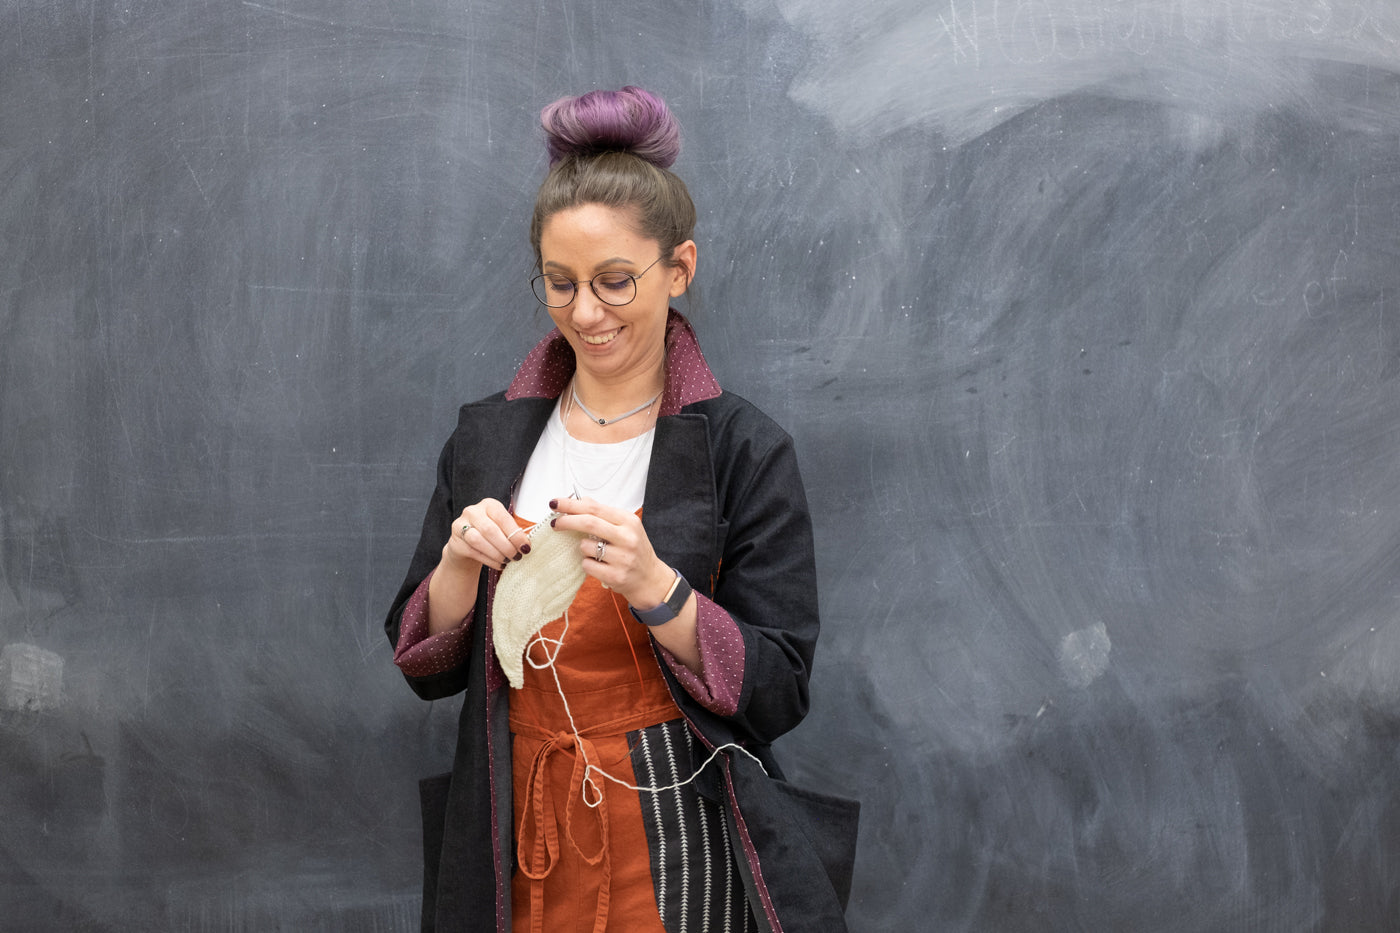 Women standing in front of a chalkboard, knitting wearing a Denim Black jacket, orange jumper with a white t-shirt.  The women's hair dyed in black/purple ombre is in a bun on the top of her head.